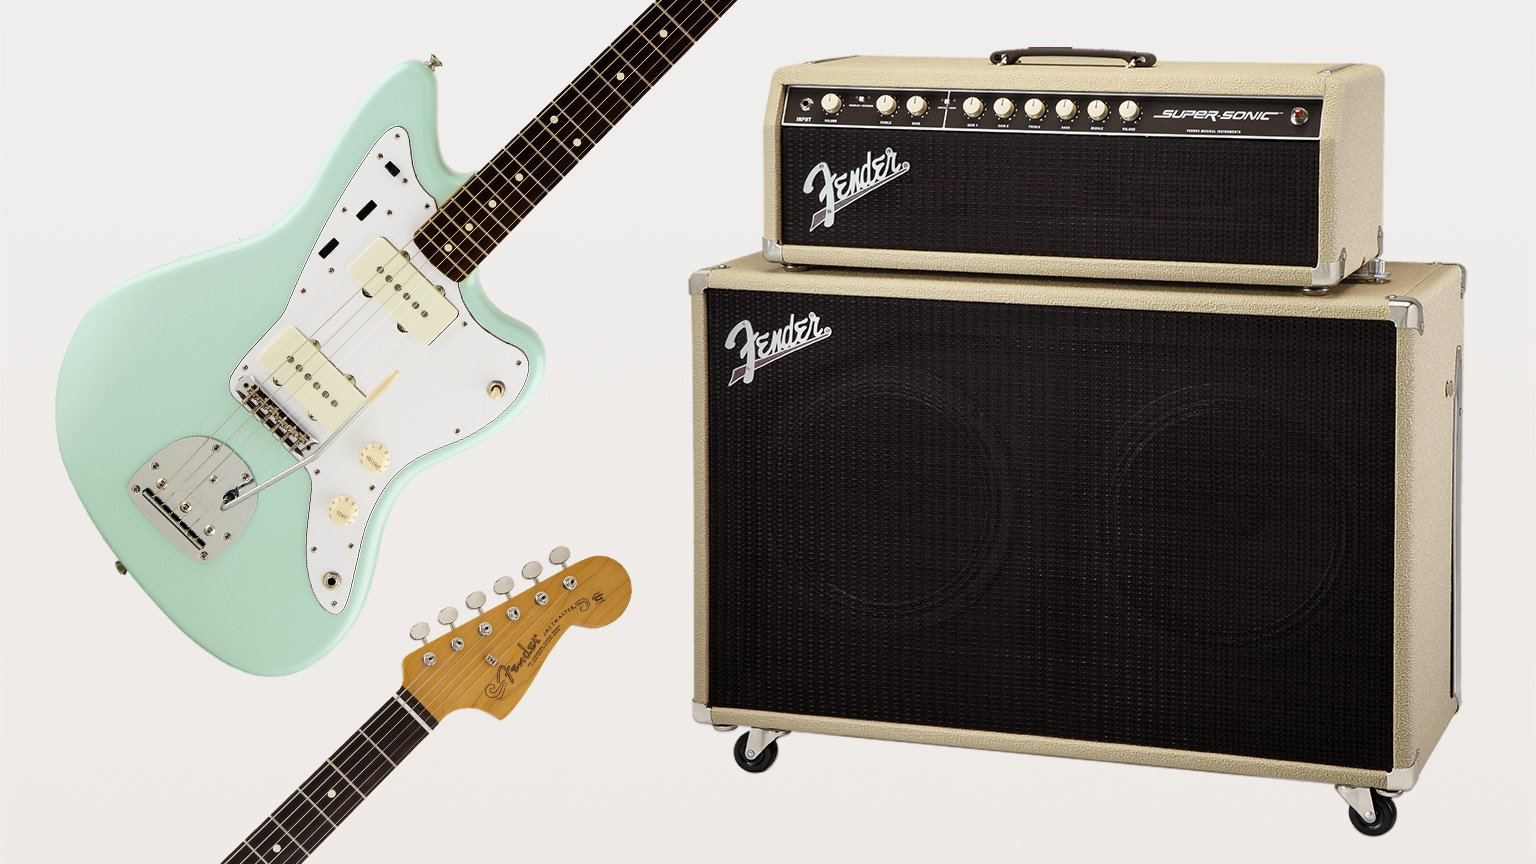 guitar-amp-combinations-jazzmaster-supersonic-head-212-blonde-cabinet-2x